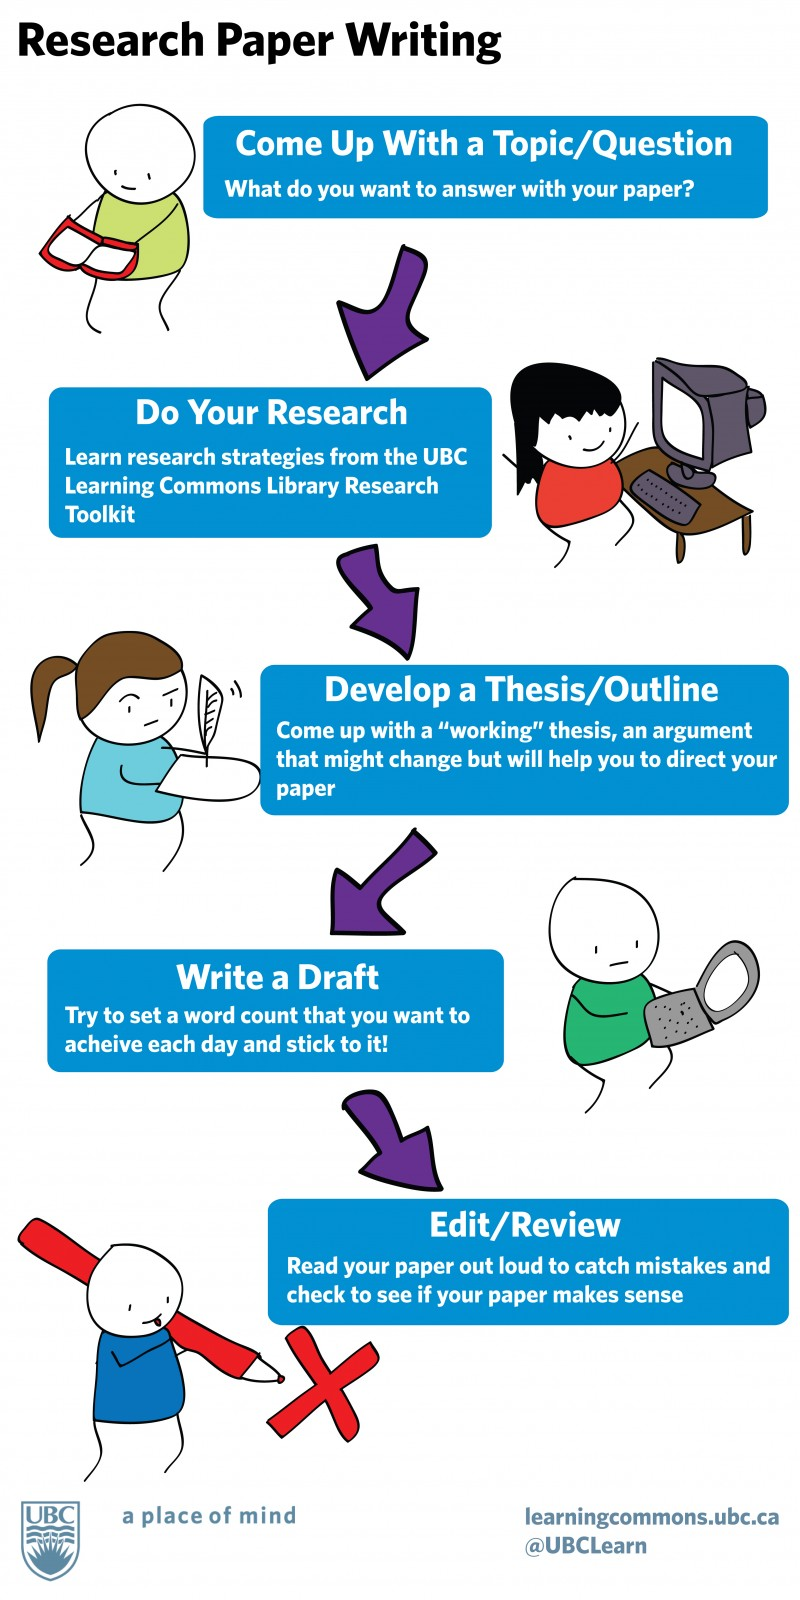 strategy for writing a research paper Strategies for essay writing the links below provide concise advice on some fundamental elements of academic writing how to read an assignment moving from.